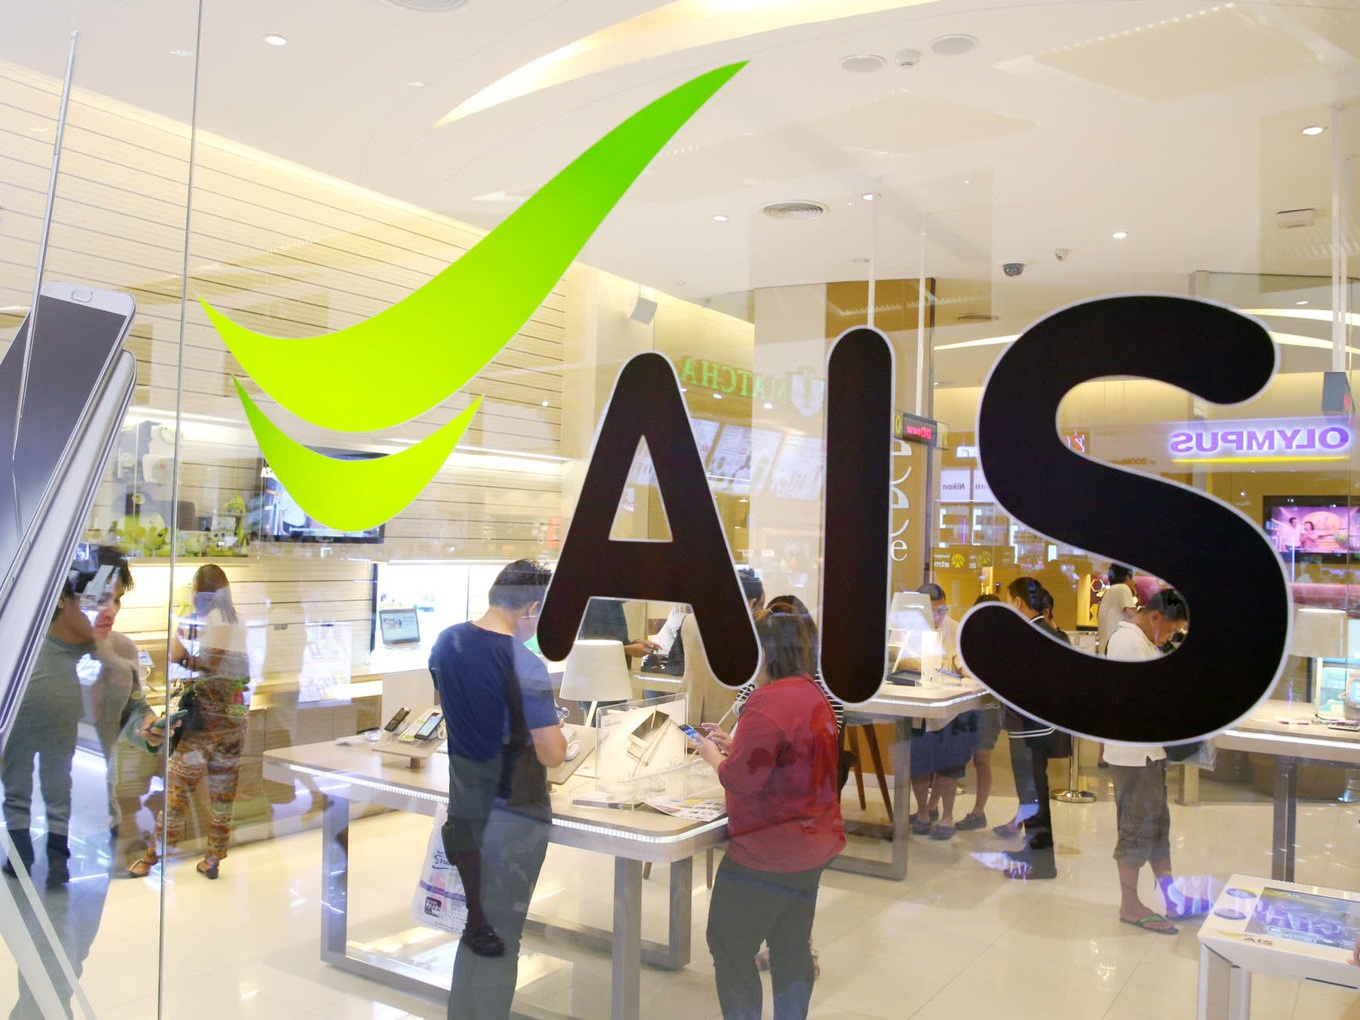 - AIS, Thailand's largest telco and digital entertainment provider with 40.1 million subscribers, built a country-wide multi-tier agent network for mobile payments on WAY4. AIS customers deposit cash via agents to top-up phones and pay for value-added services.